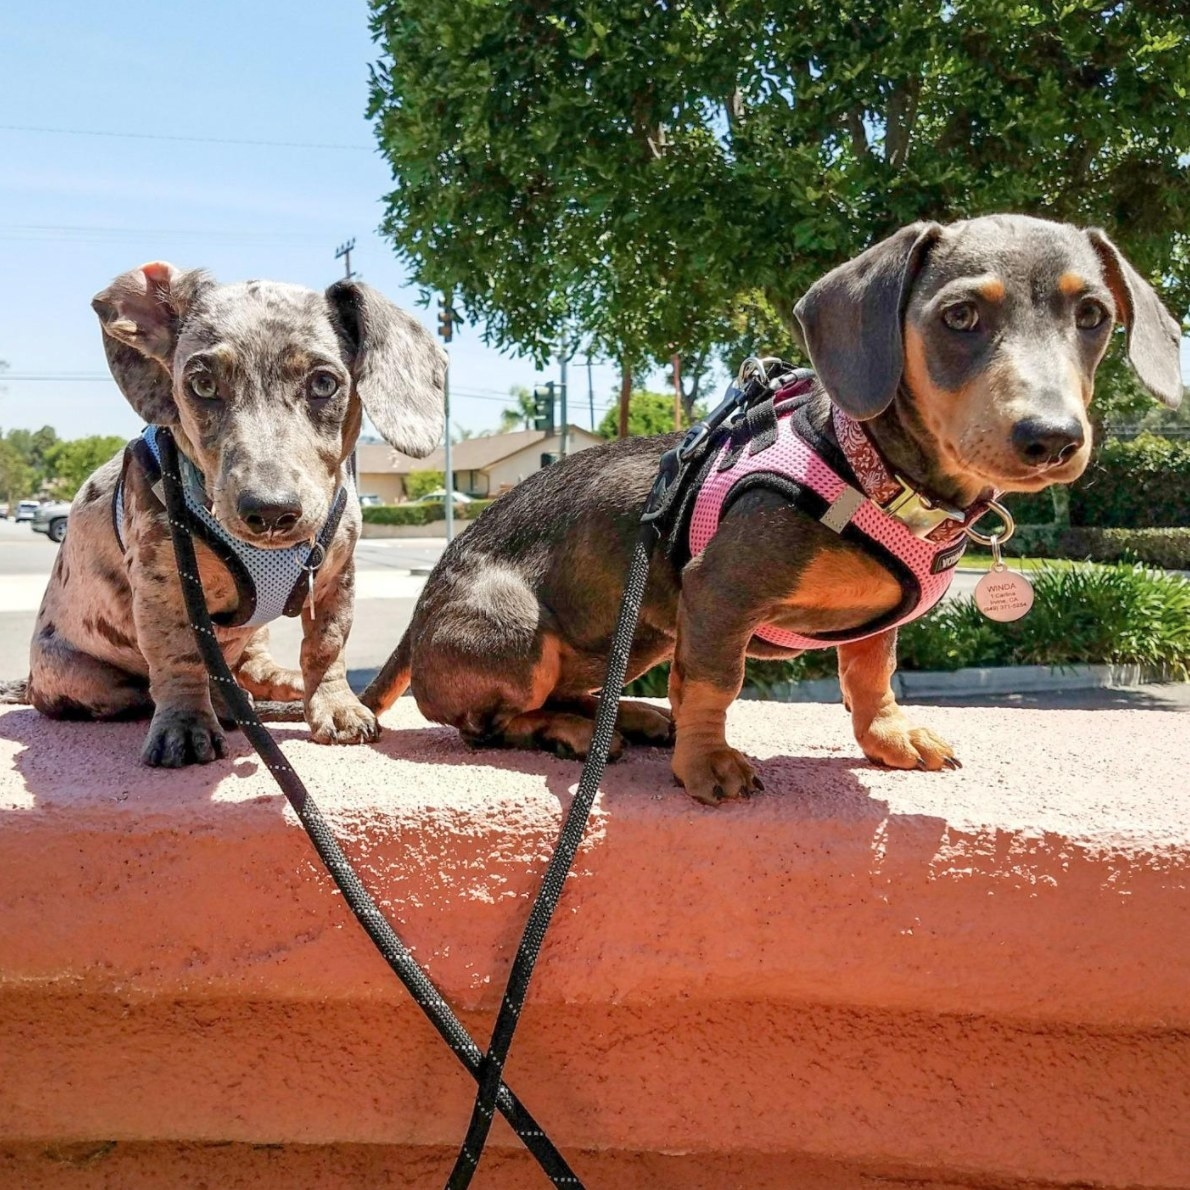 A reviewer's image of their dogs in the harnesses